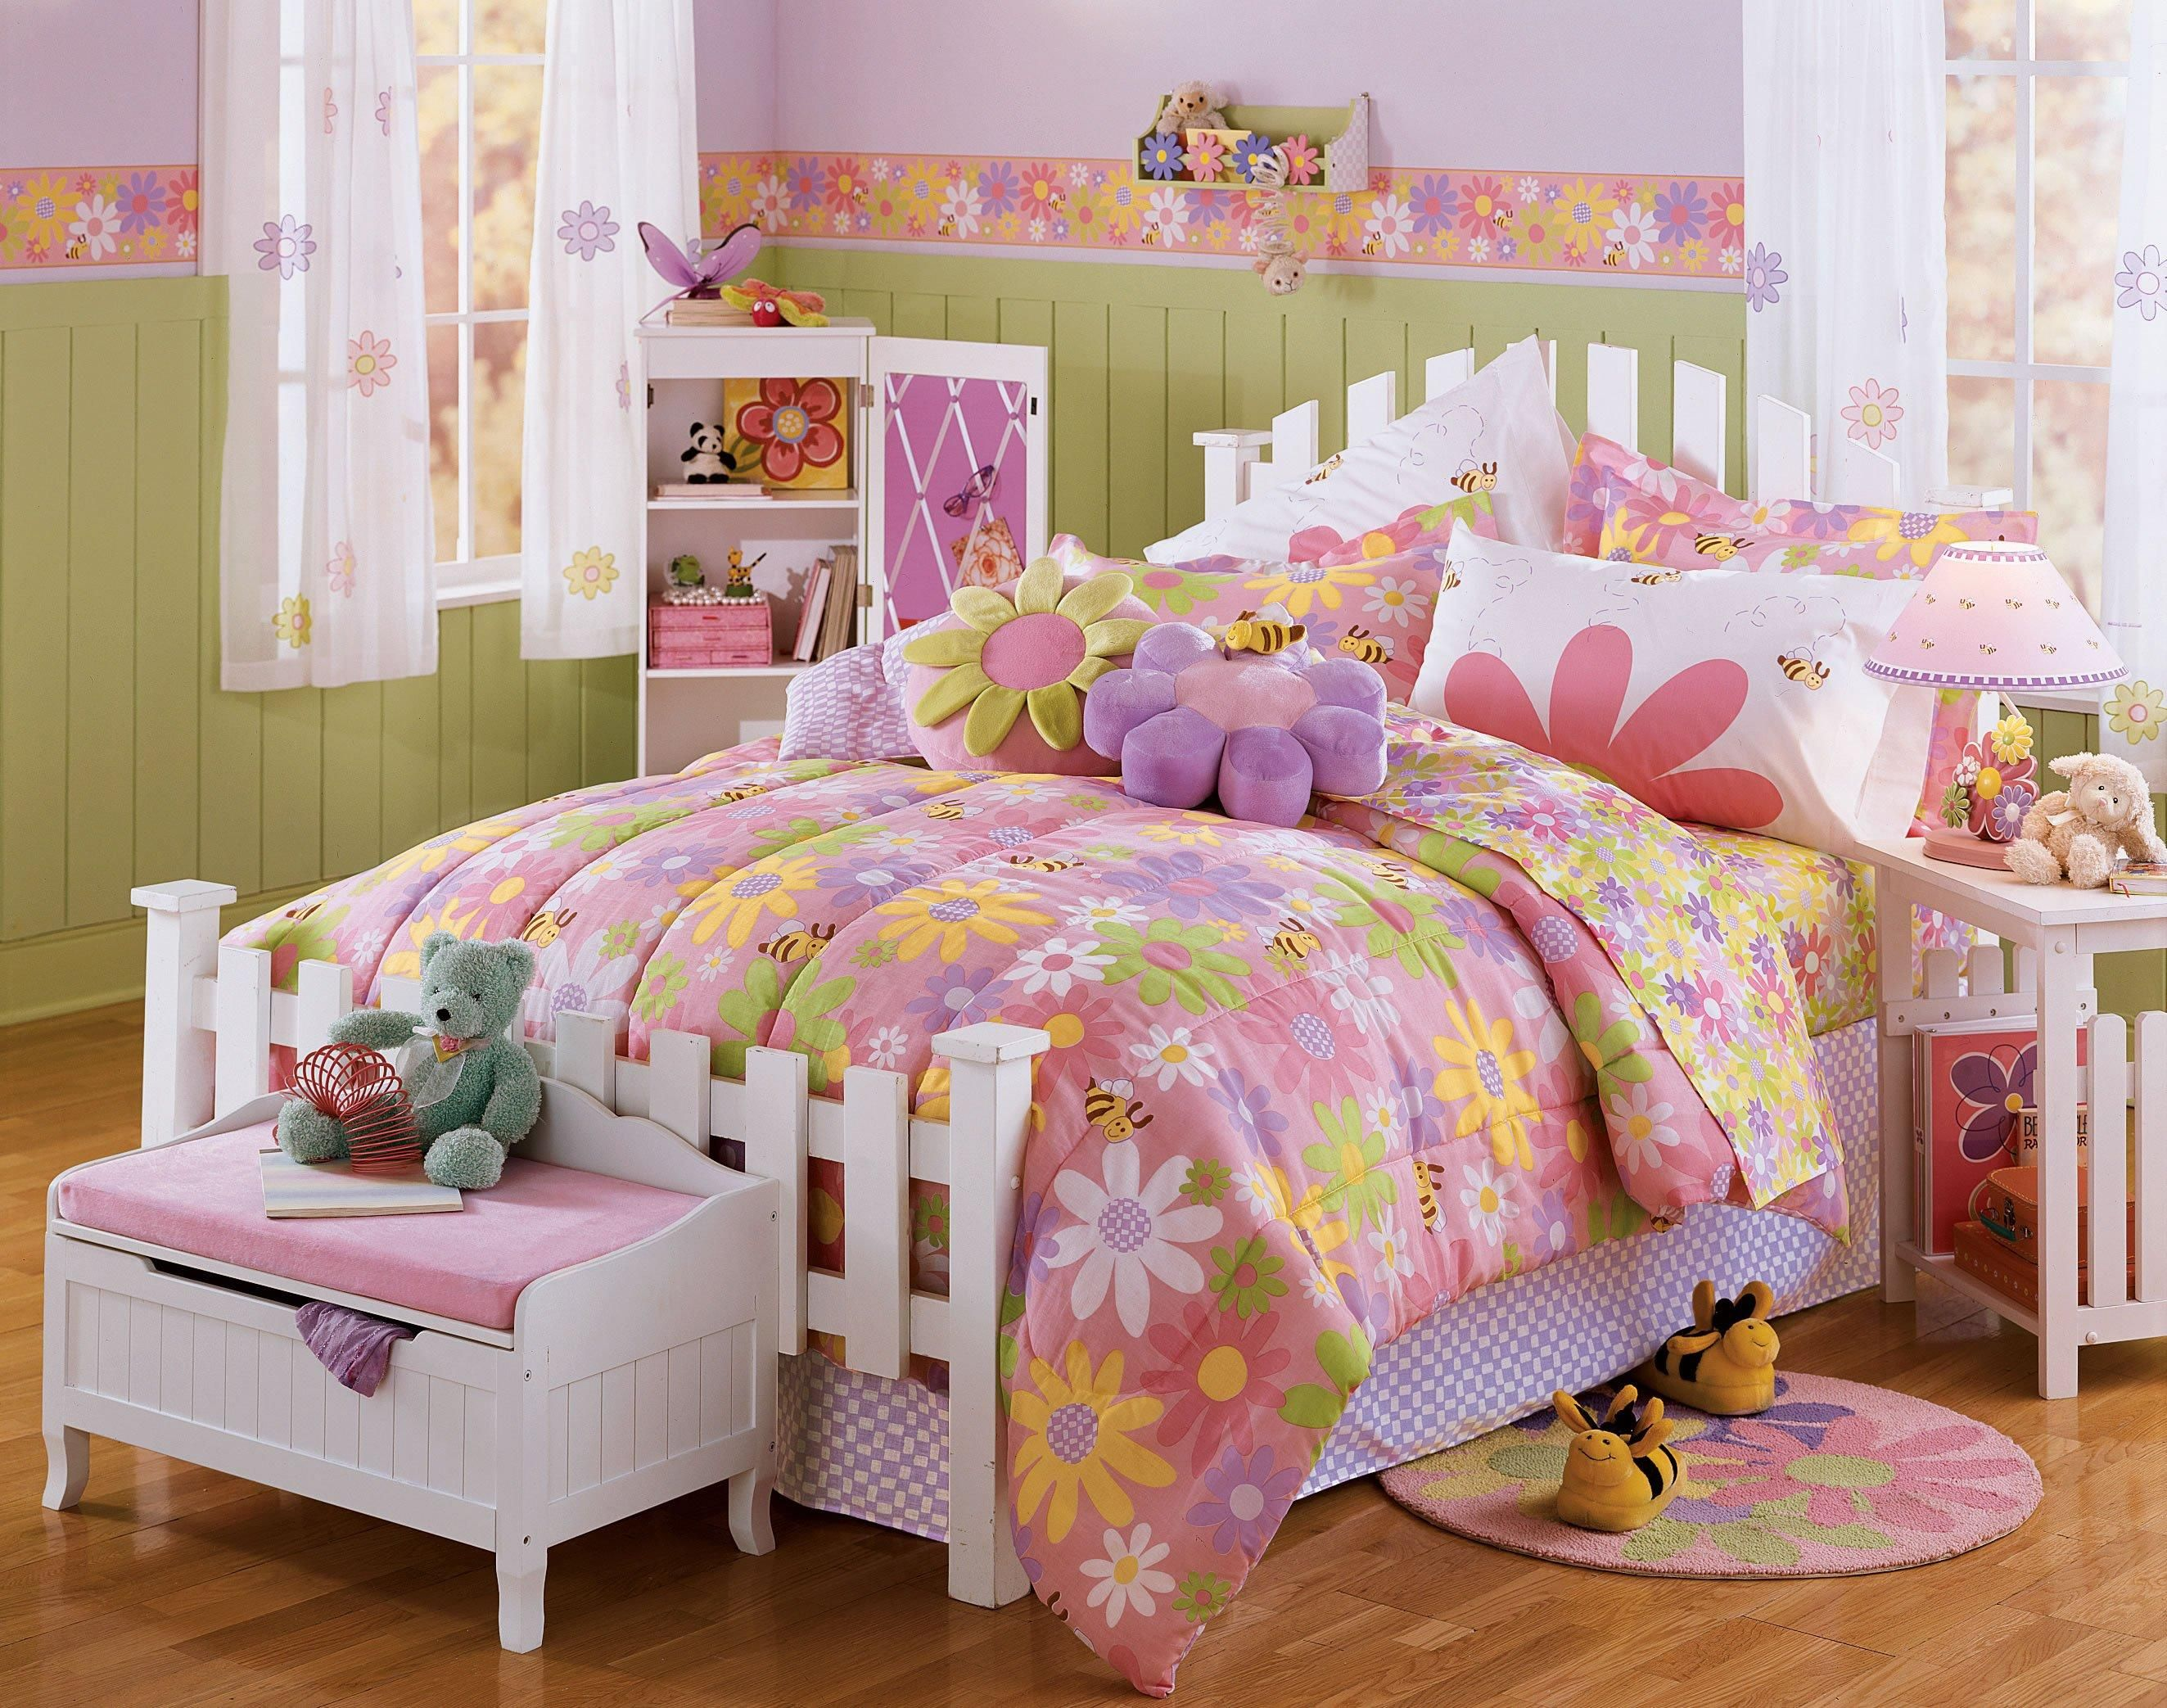 Bed sheets designs for girls - Bedroom Beautiful Design Lil Girl Bedroom Ideas Teenage Rooms Room Ideas Girls Room Decor And Bedrooms There Are Still Some More Lil Girl Bedroom Ideas